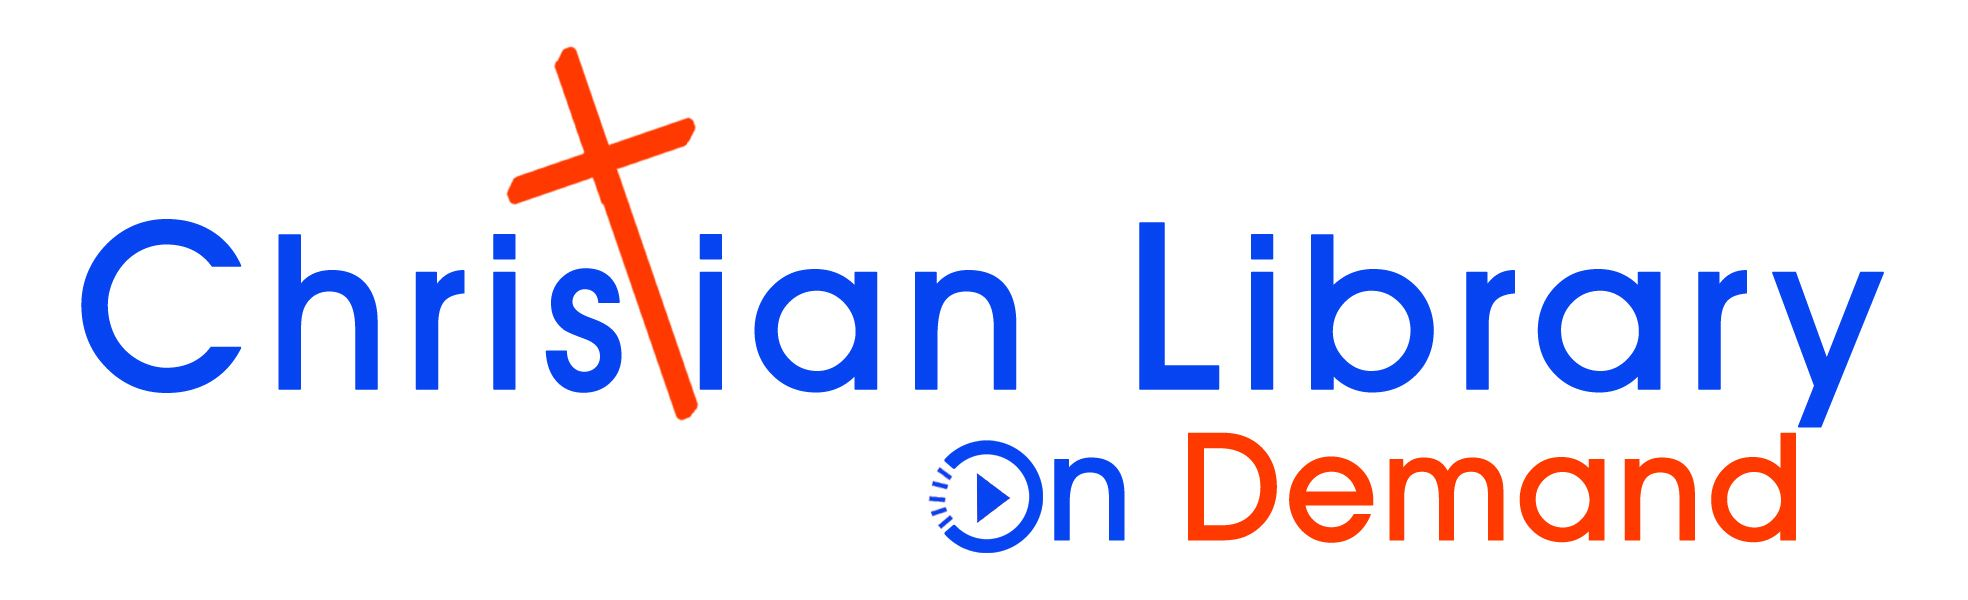 Christian Library on Demand Logo